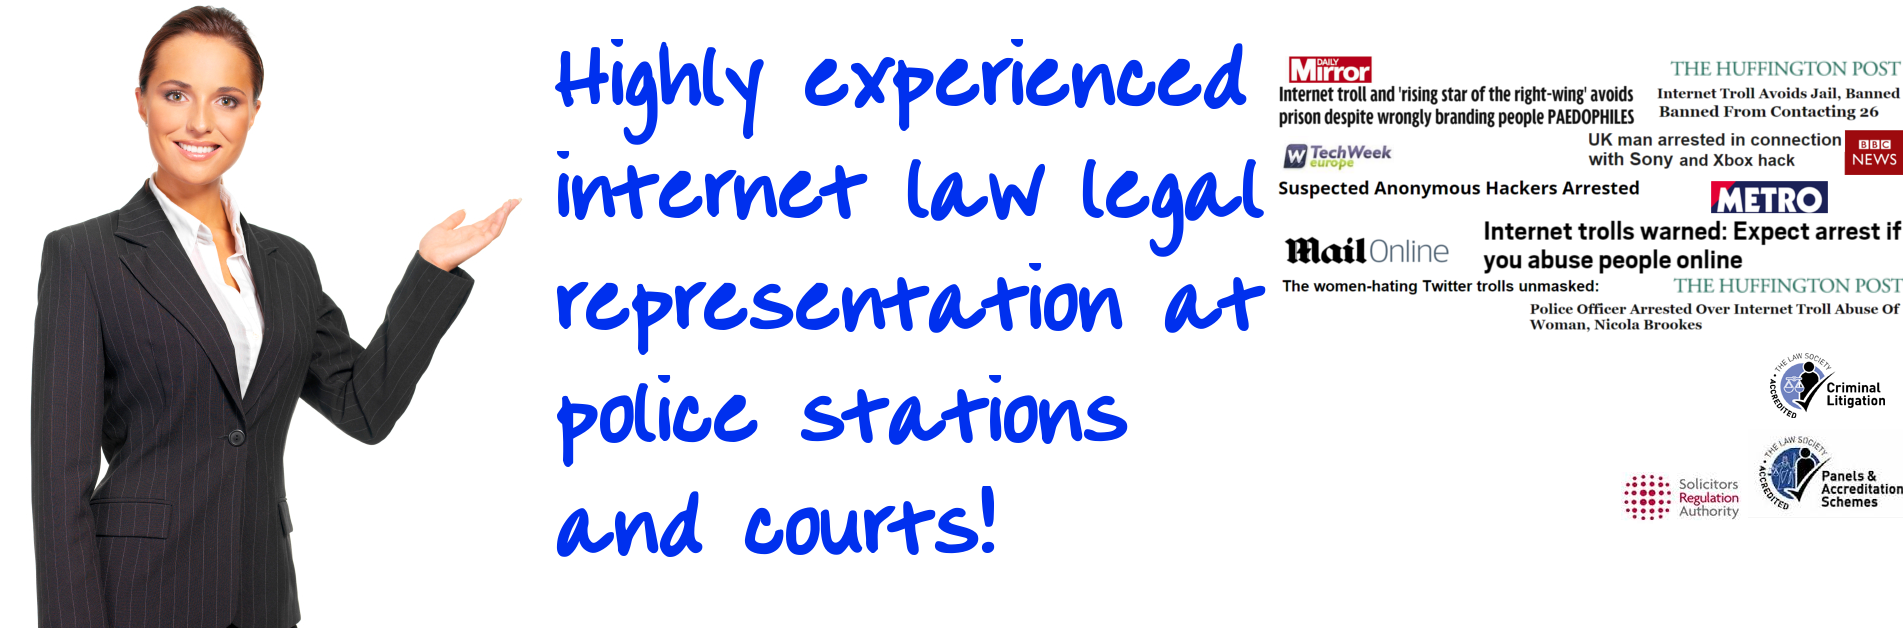 Legal representation internet crime